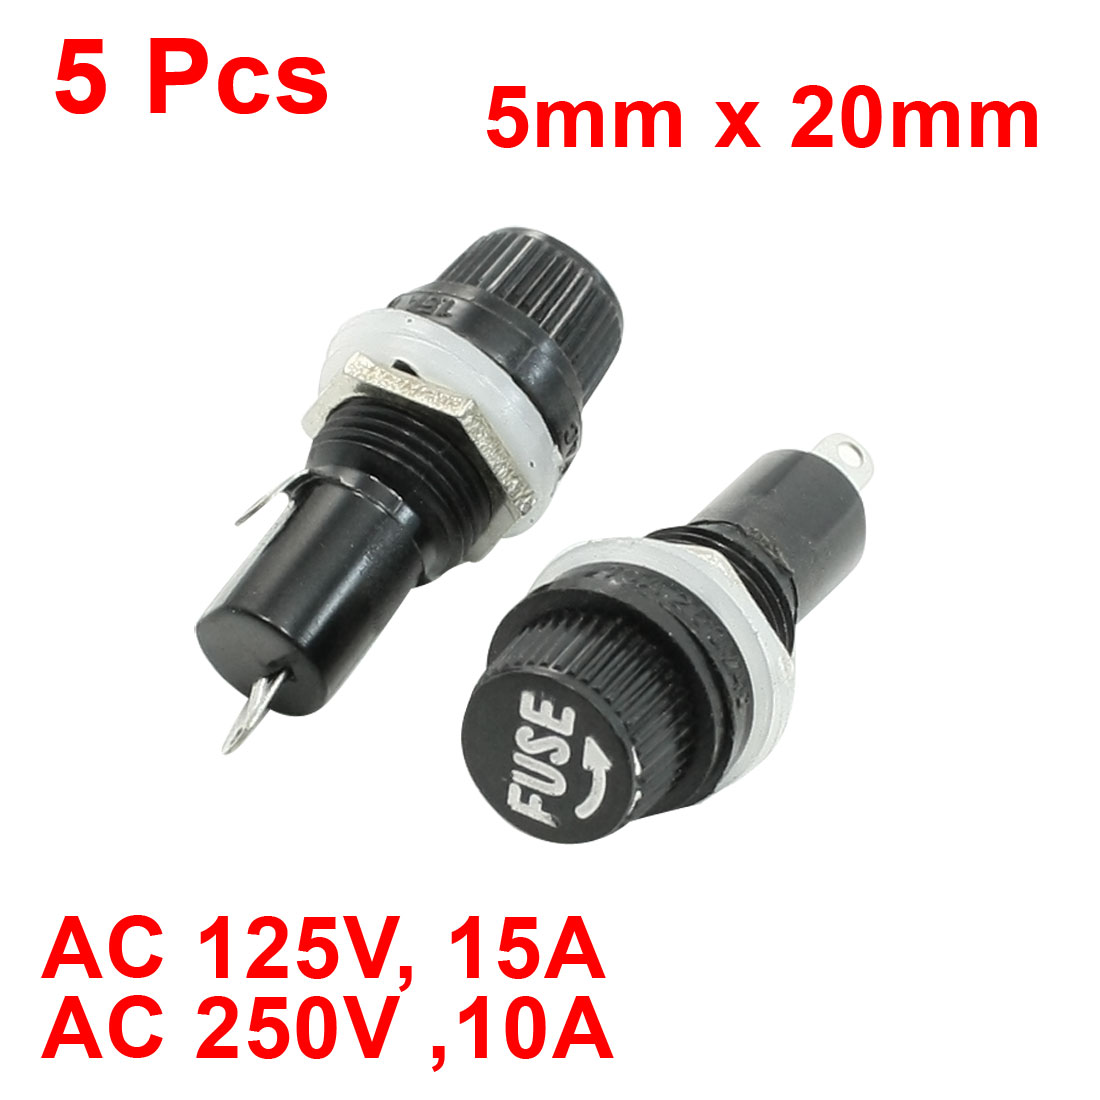 5 Pcs 5mm x 20mm Fuse Waterproof Fuses Holder AC 125V 15A 250V 10A